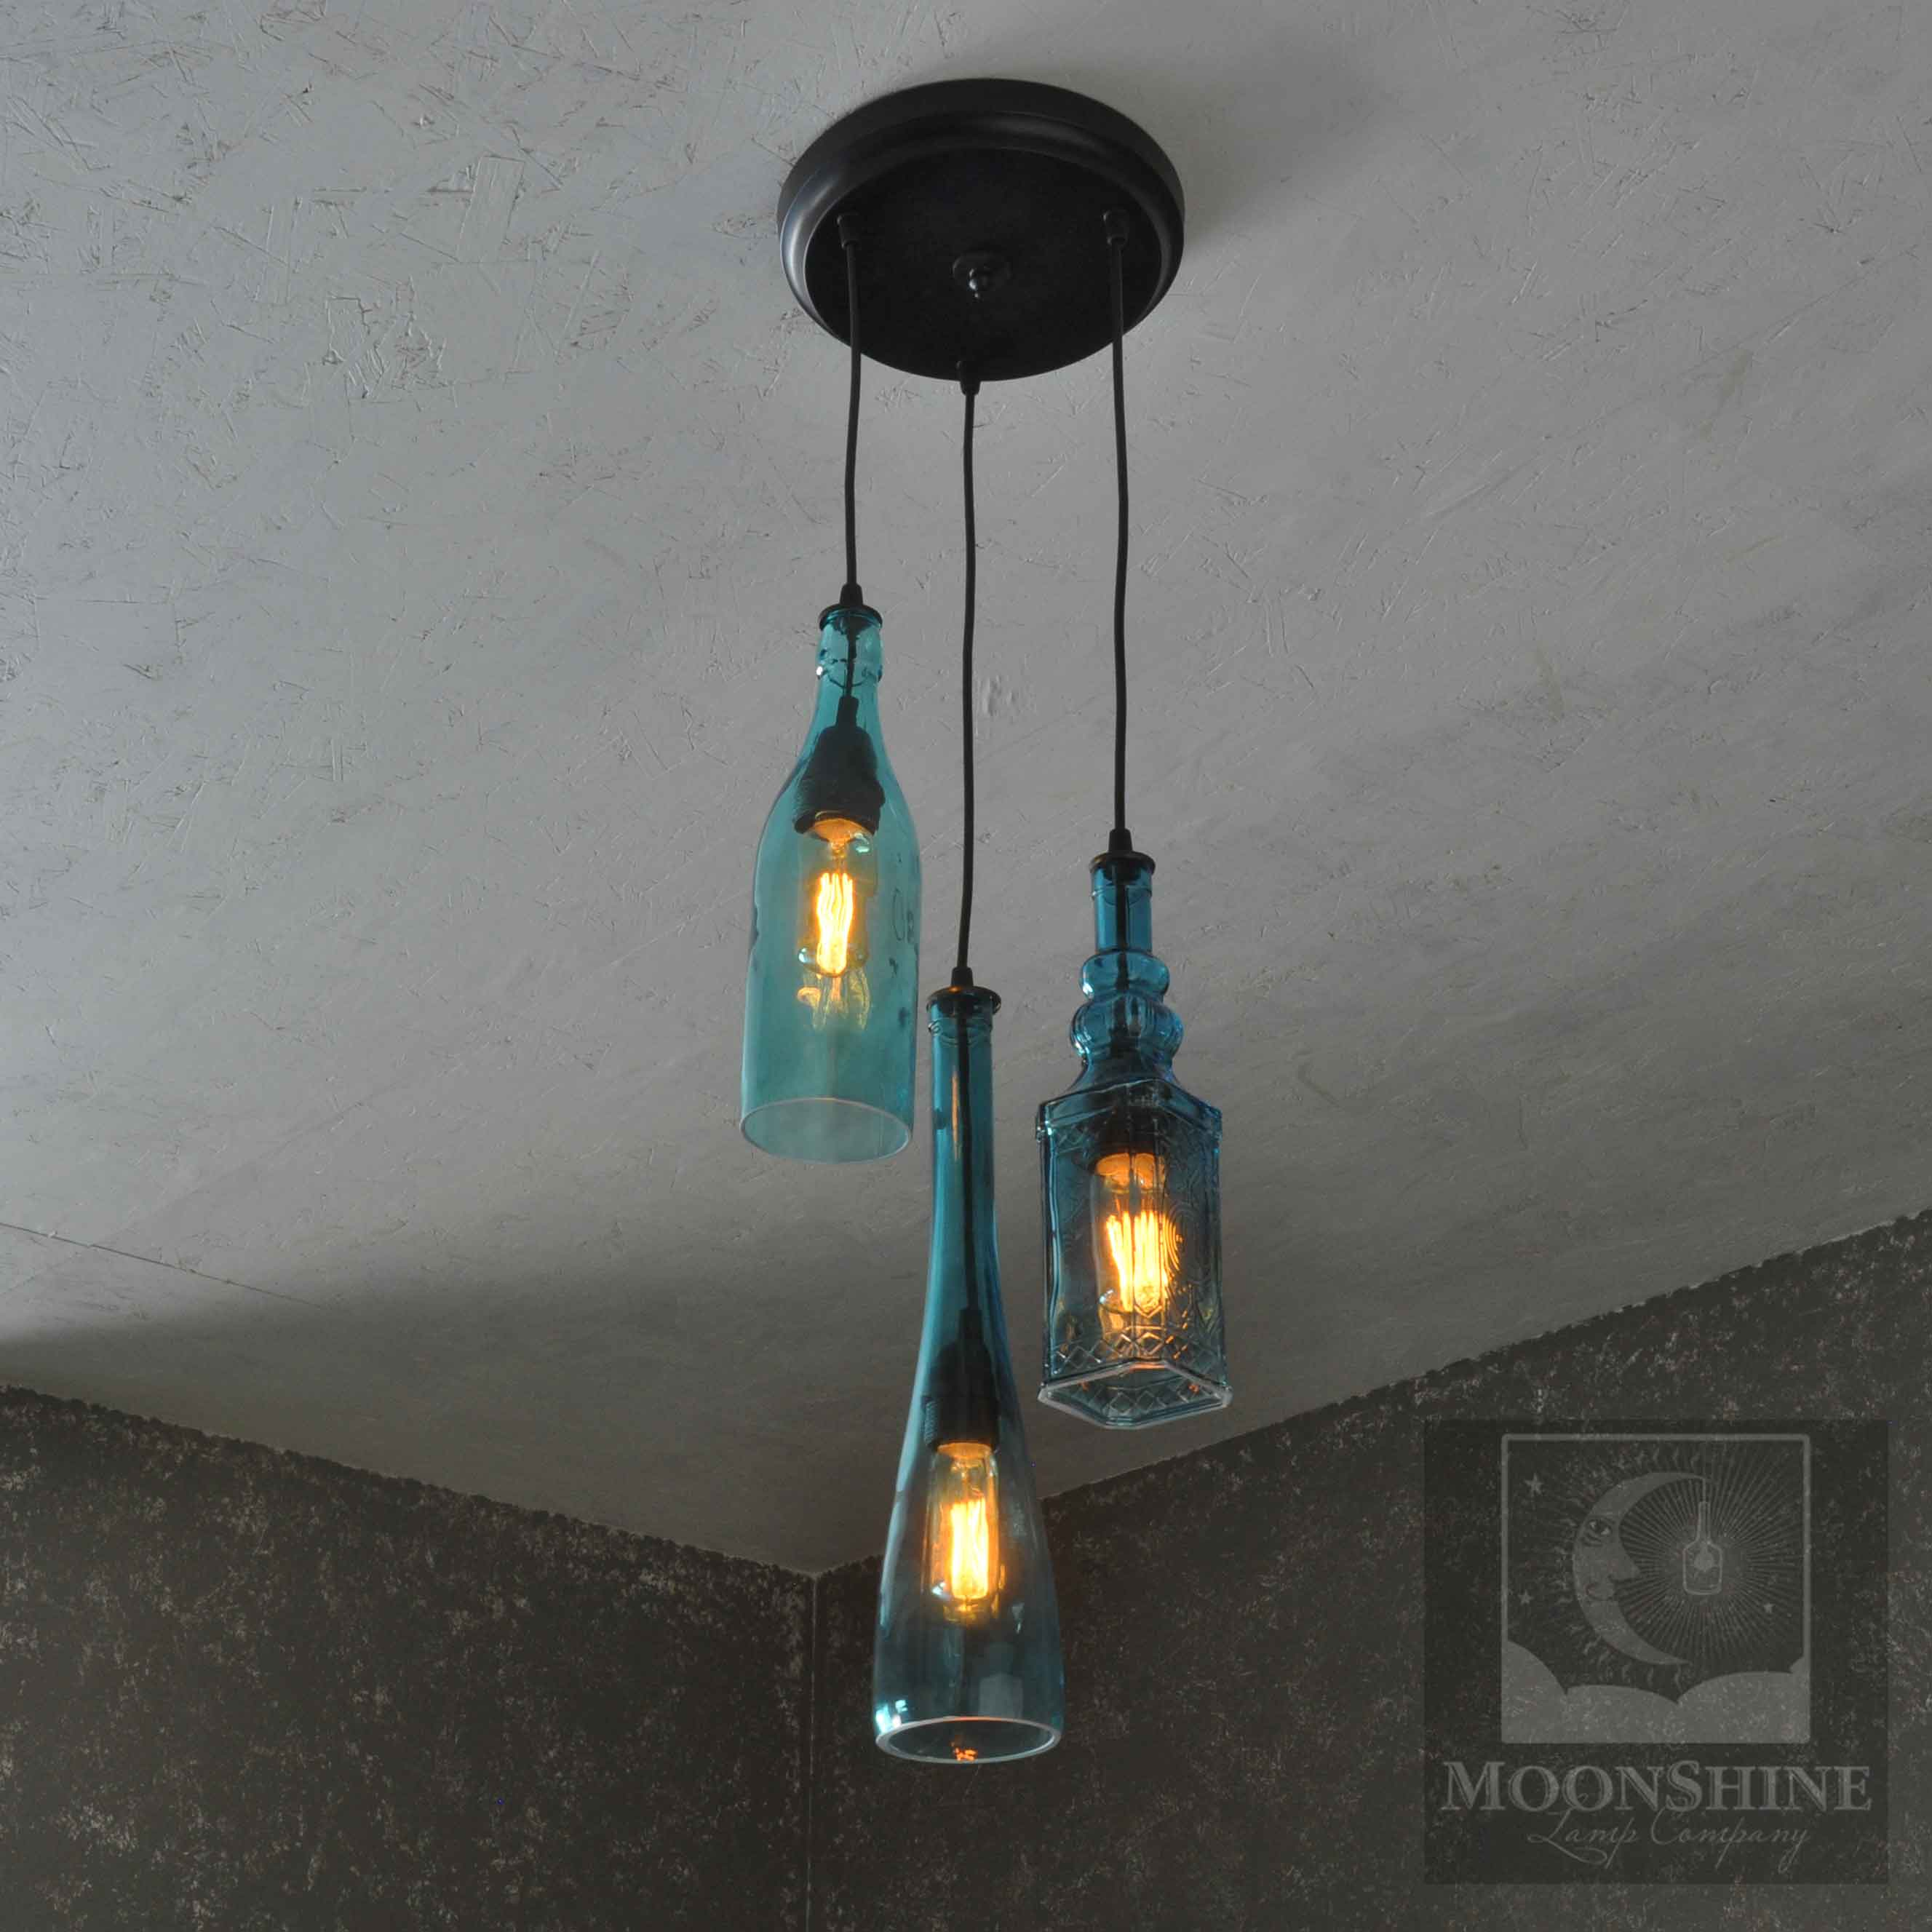 The harmony 3 light recycled colored bottle hanging pendant product description aloadofball Gallery